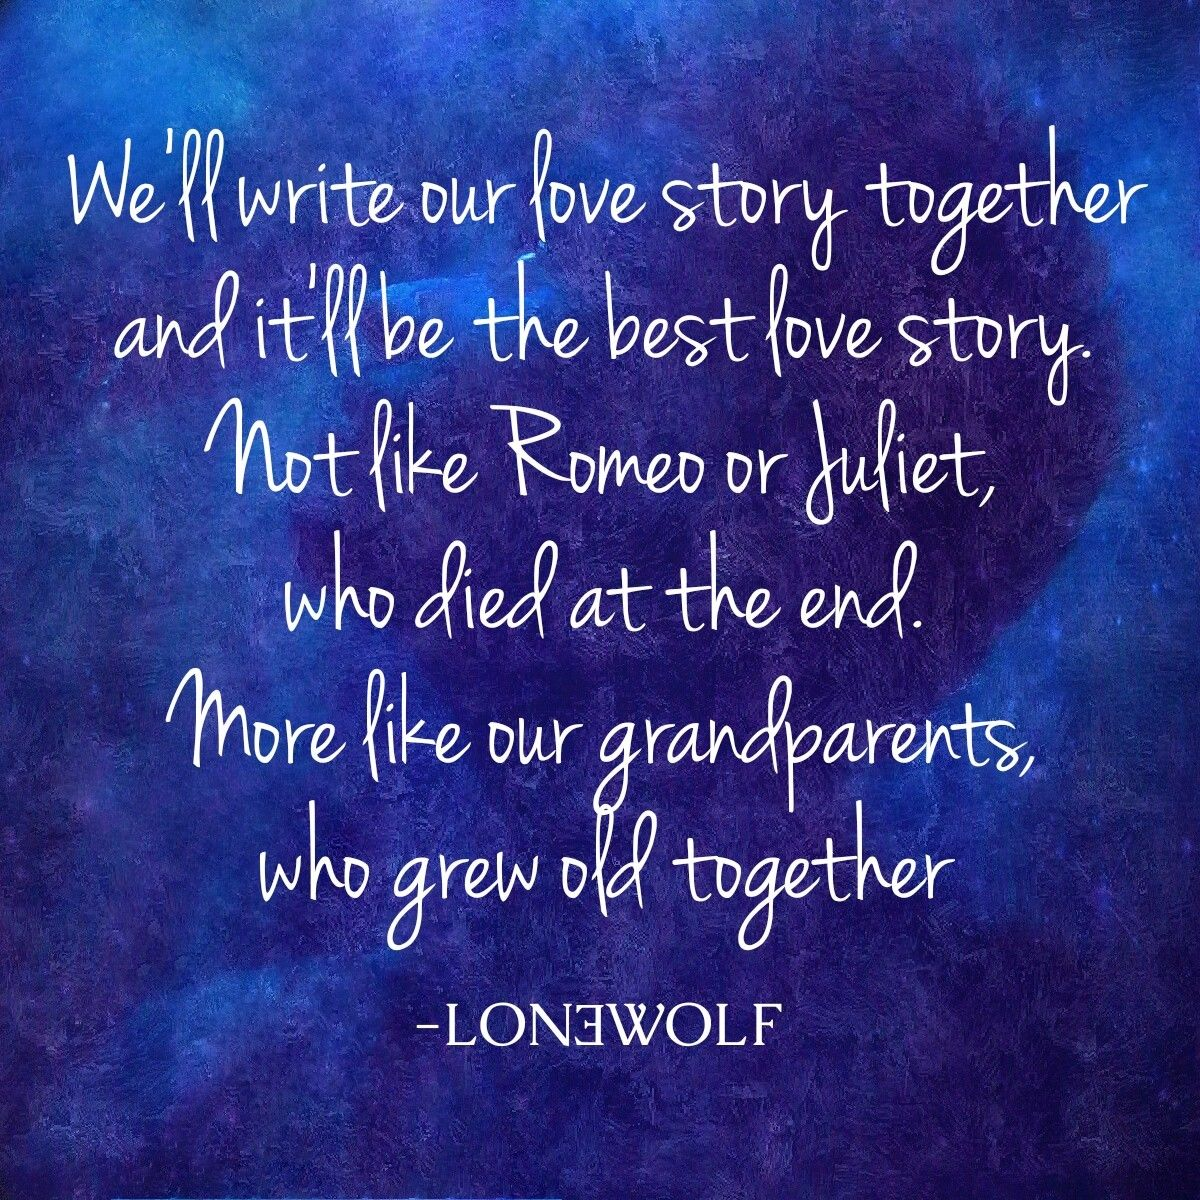 Lonǝwolf Cute Quote Life Quote Love Quote Sweet Quote Don T Forget To Like Share Support Follow Lon3wolfoff Sweet Quotes Unspoken Words Cute Quotes